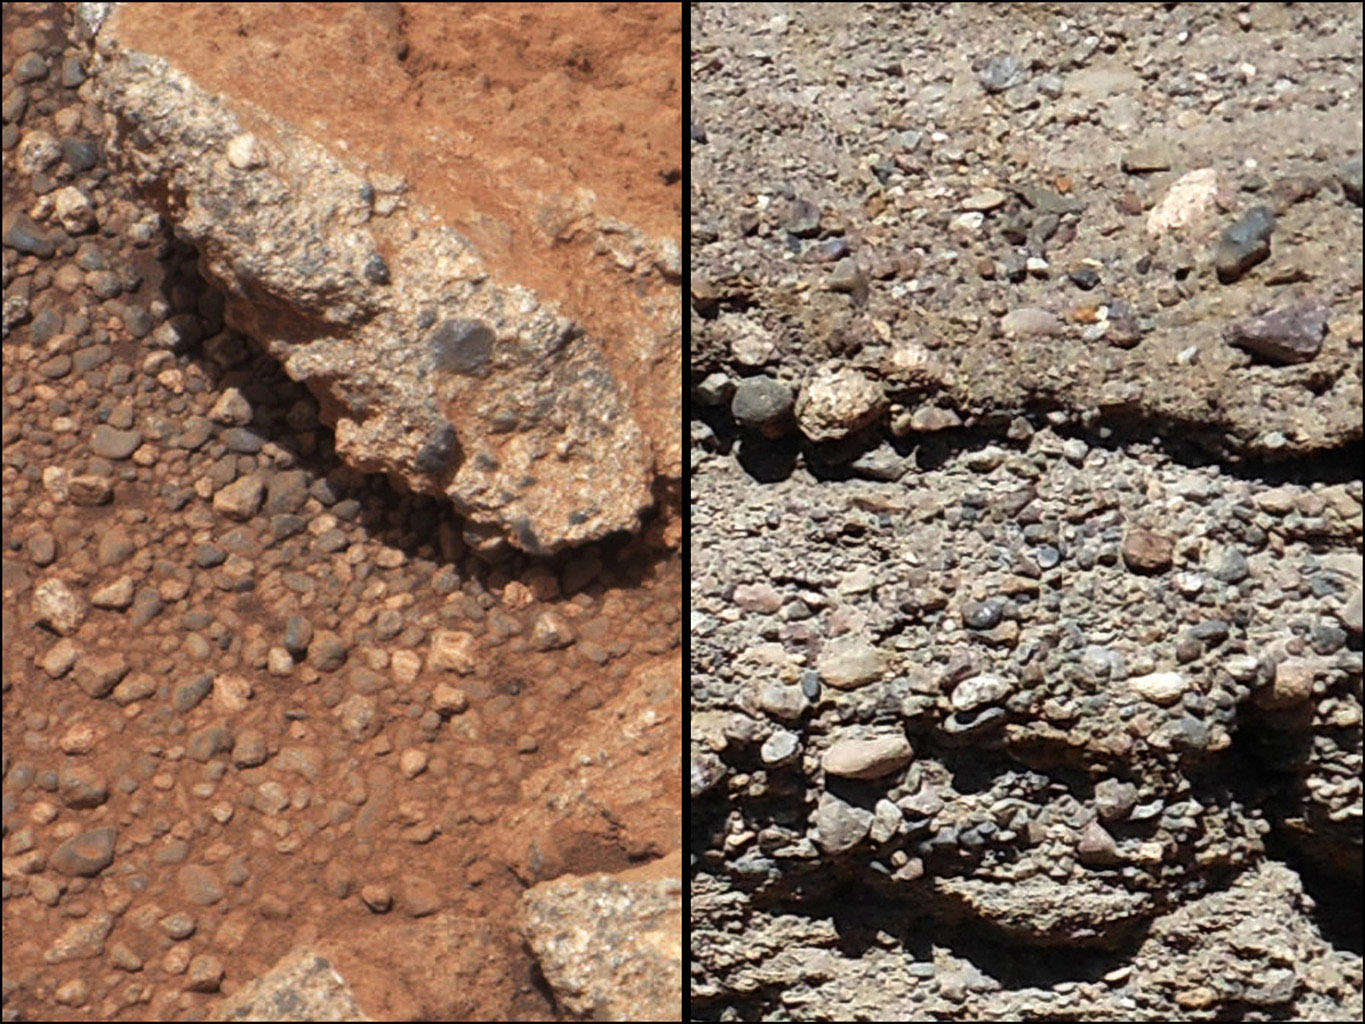 This set of images compares the 'Link' outcrop of rocks on Mars (left) with similar rocks seen on Earth (right). The 'Link' outcrop shows rounded gravel fragments, or clasts, up to a couple inches (few centimeters), within the rock outcrop.